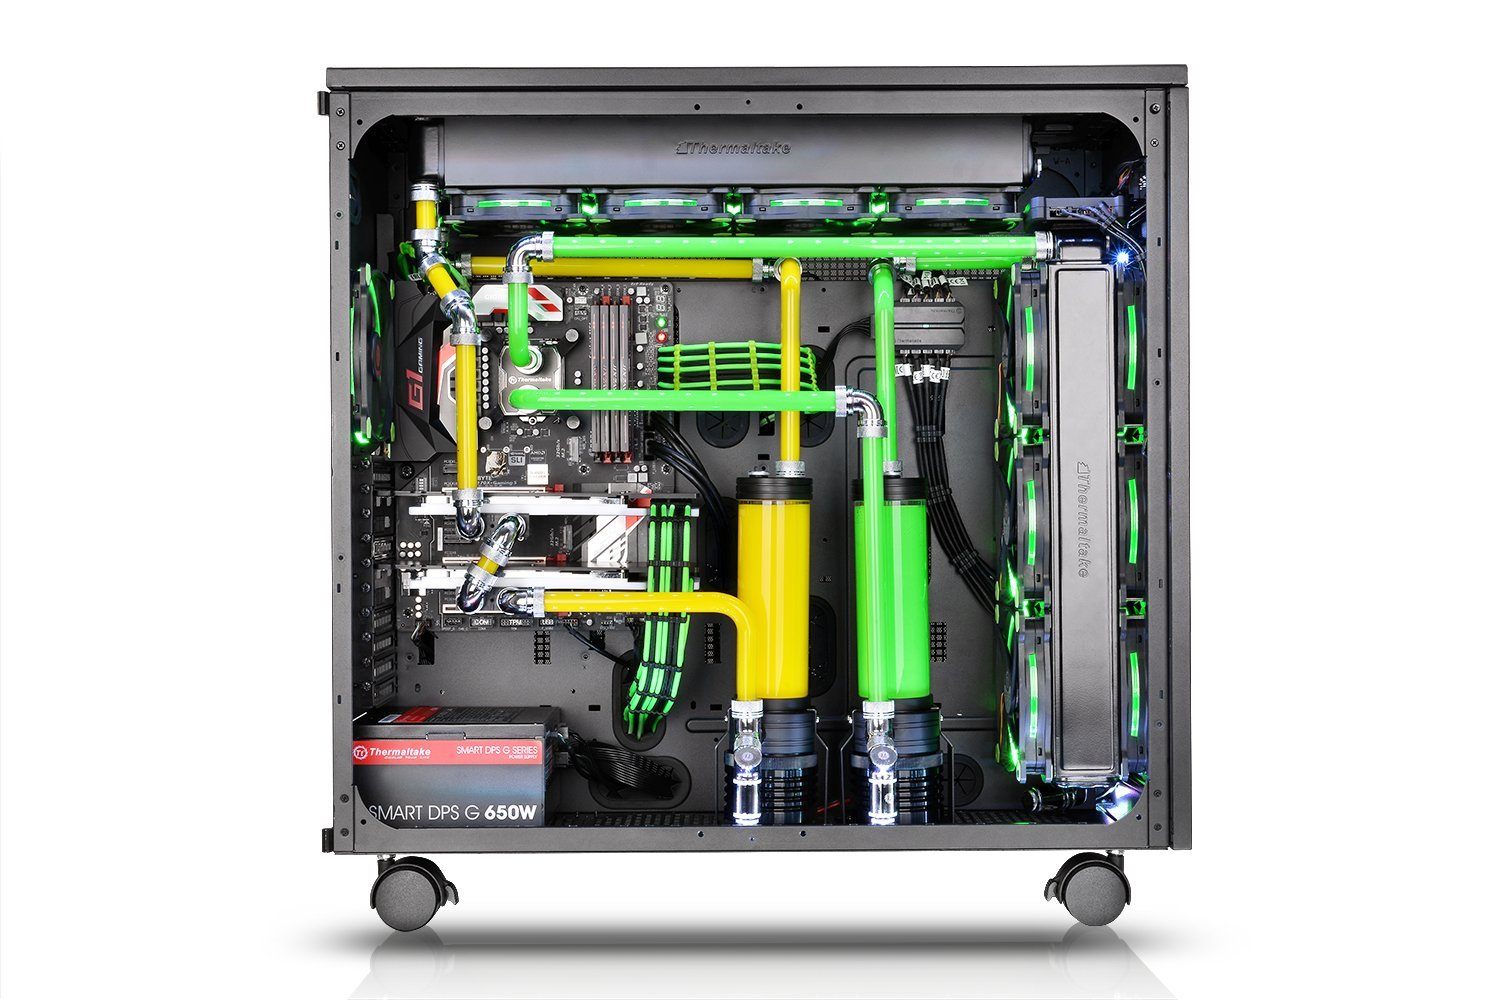 Thermaltake Core W100 Extreme Water Cooling XL-ATX Fully Modular/Dismantle Stackable Tt LCS Certified Super Tower Computer Case CA-1F2-00F1WN-00 by Thermaltake